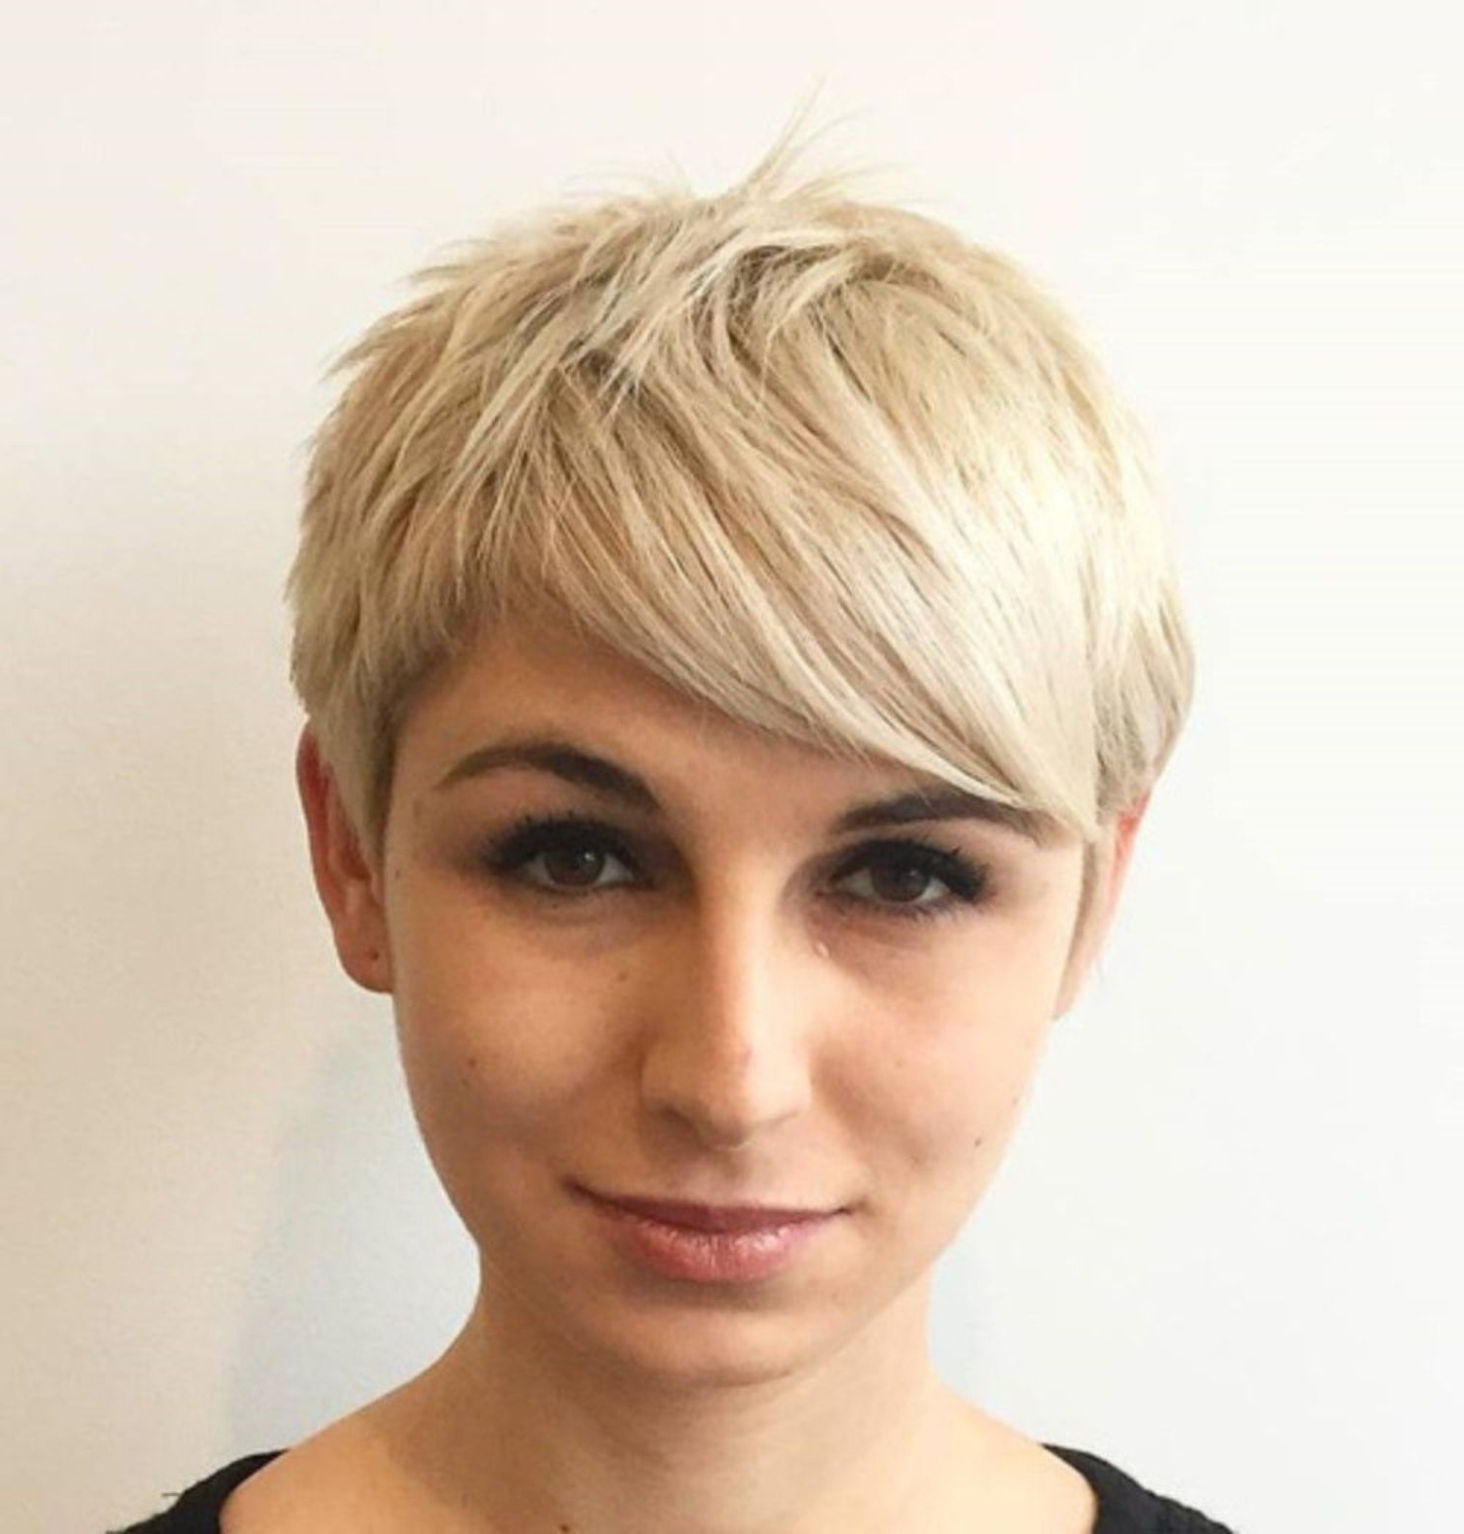 Pin On Hair Regarding Messy Spiky Pixie Haircuts With Asymmetrical Bangs (View 17 of 20)